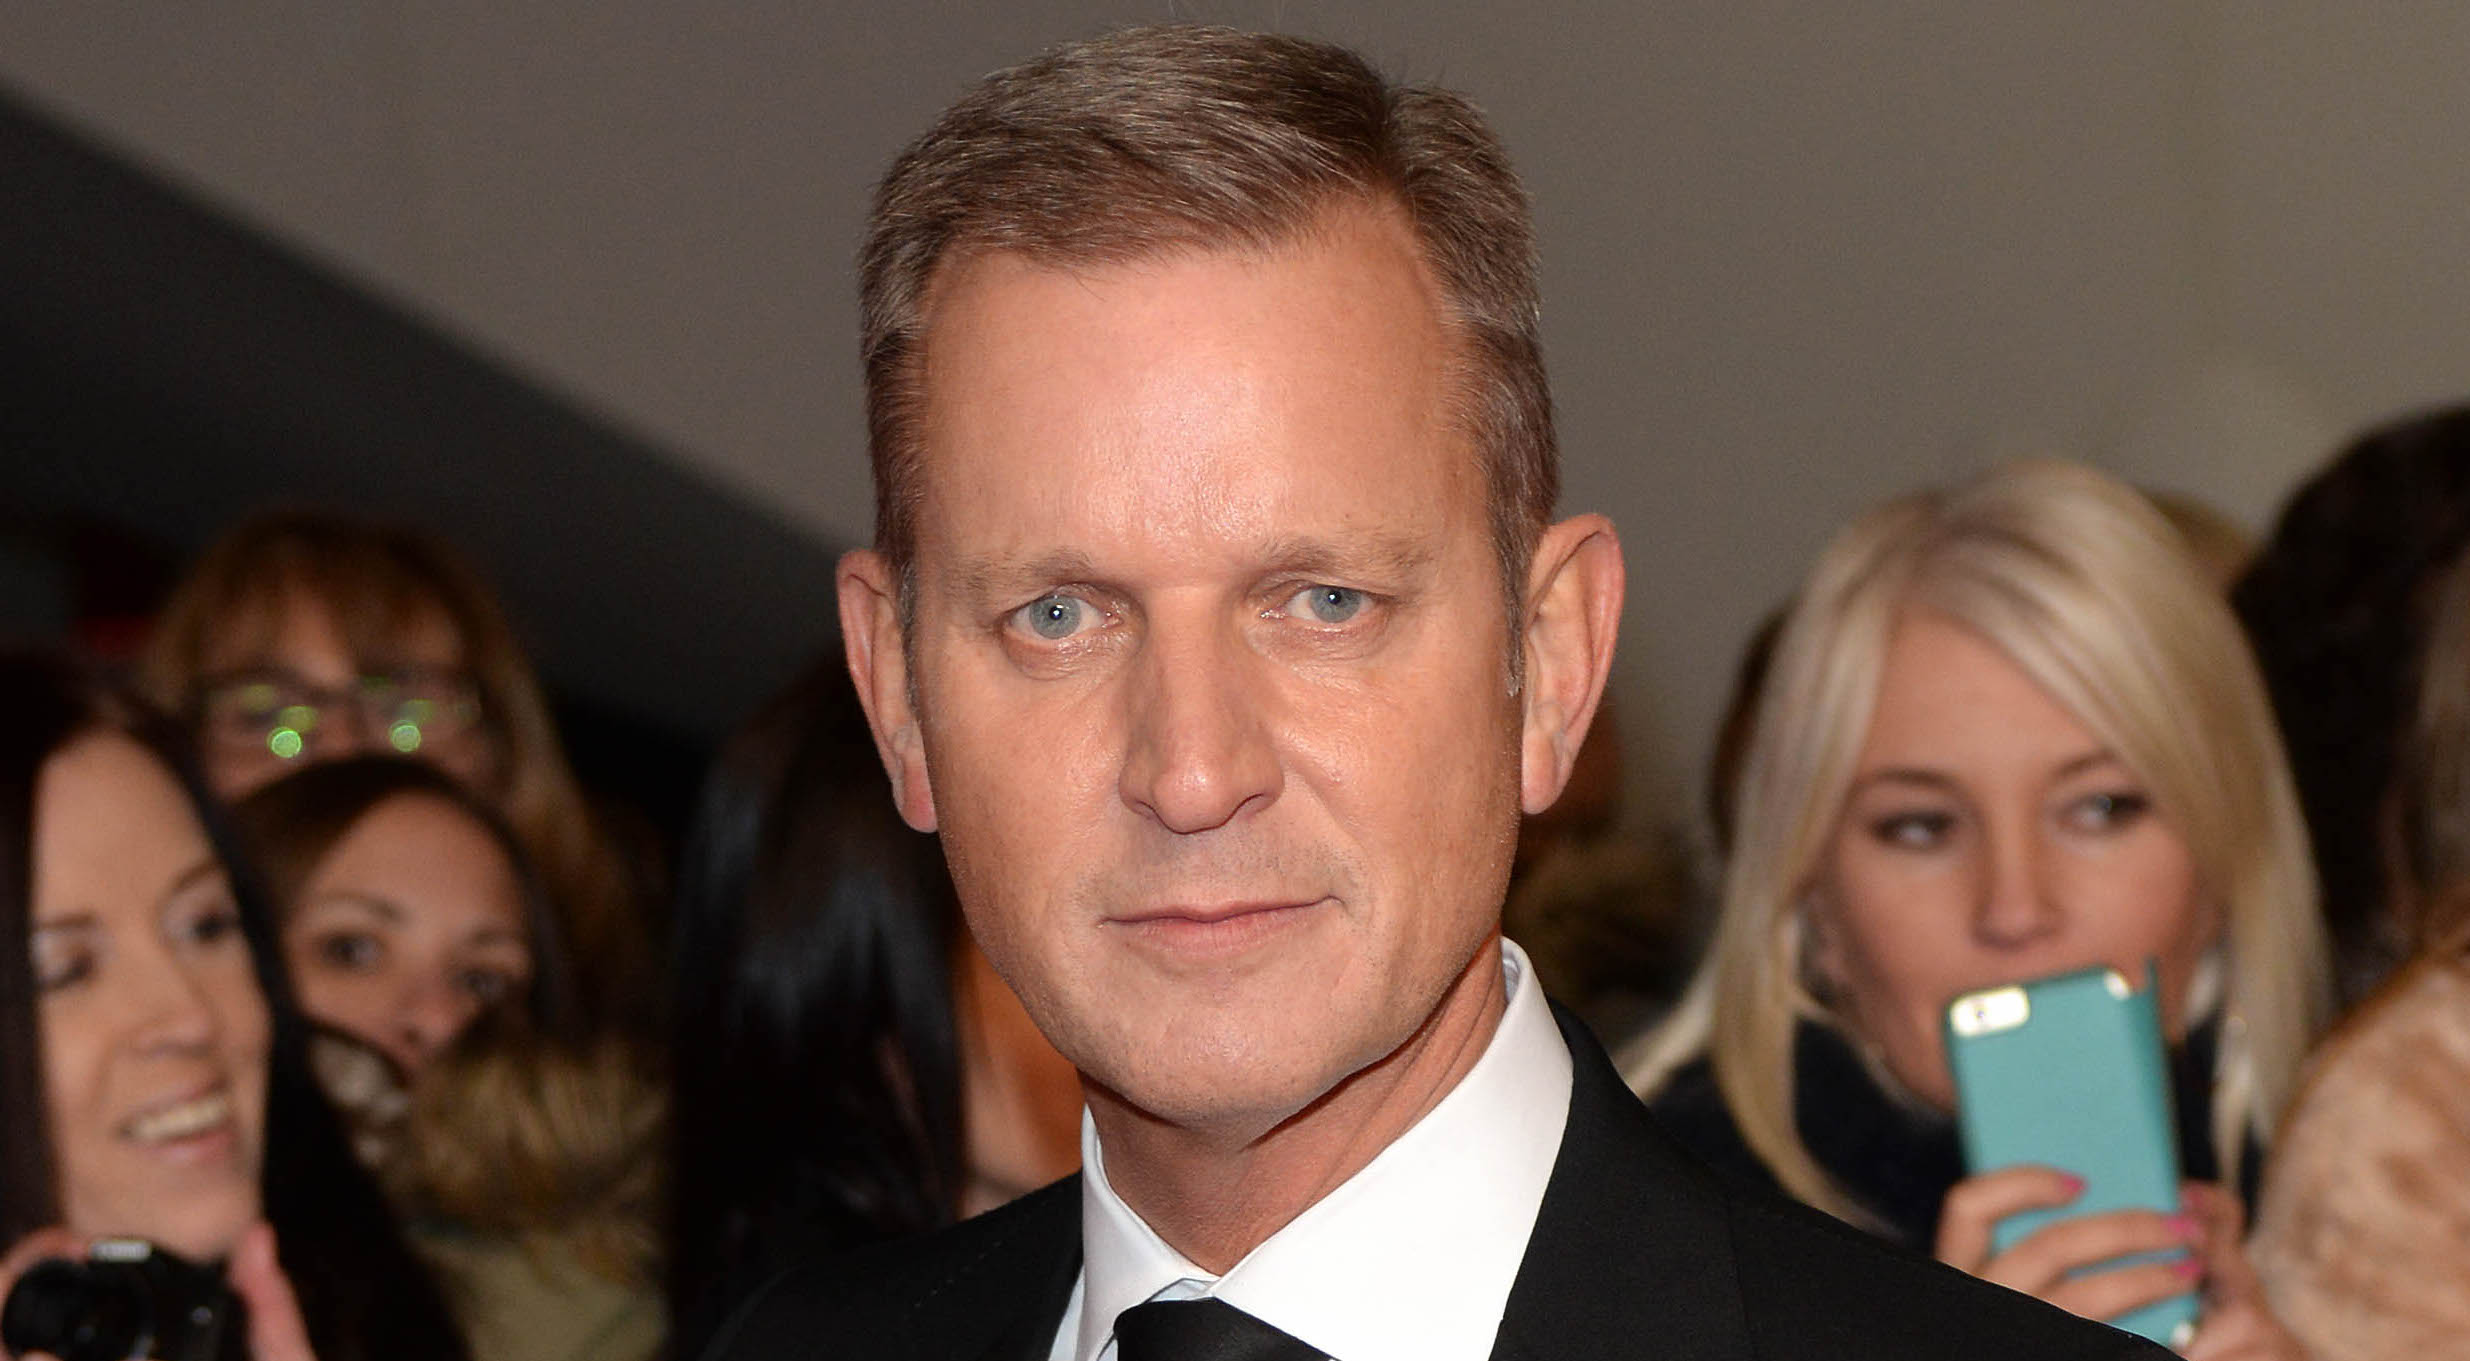 Former Jeremy Kyle Show guest says star 'shouldn't be allowed' back on TV